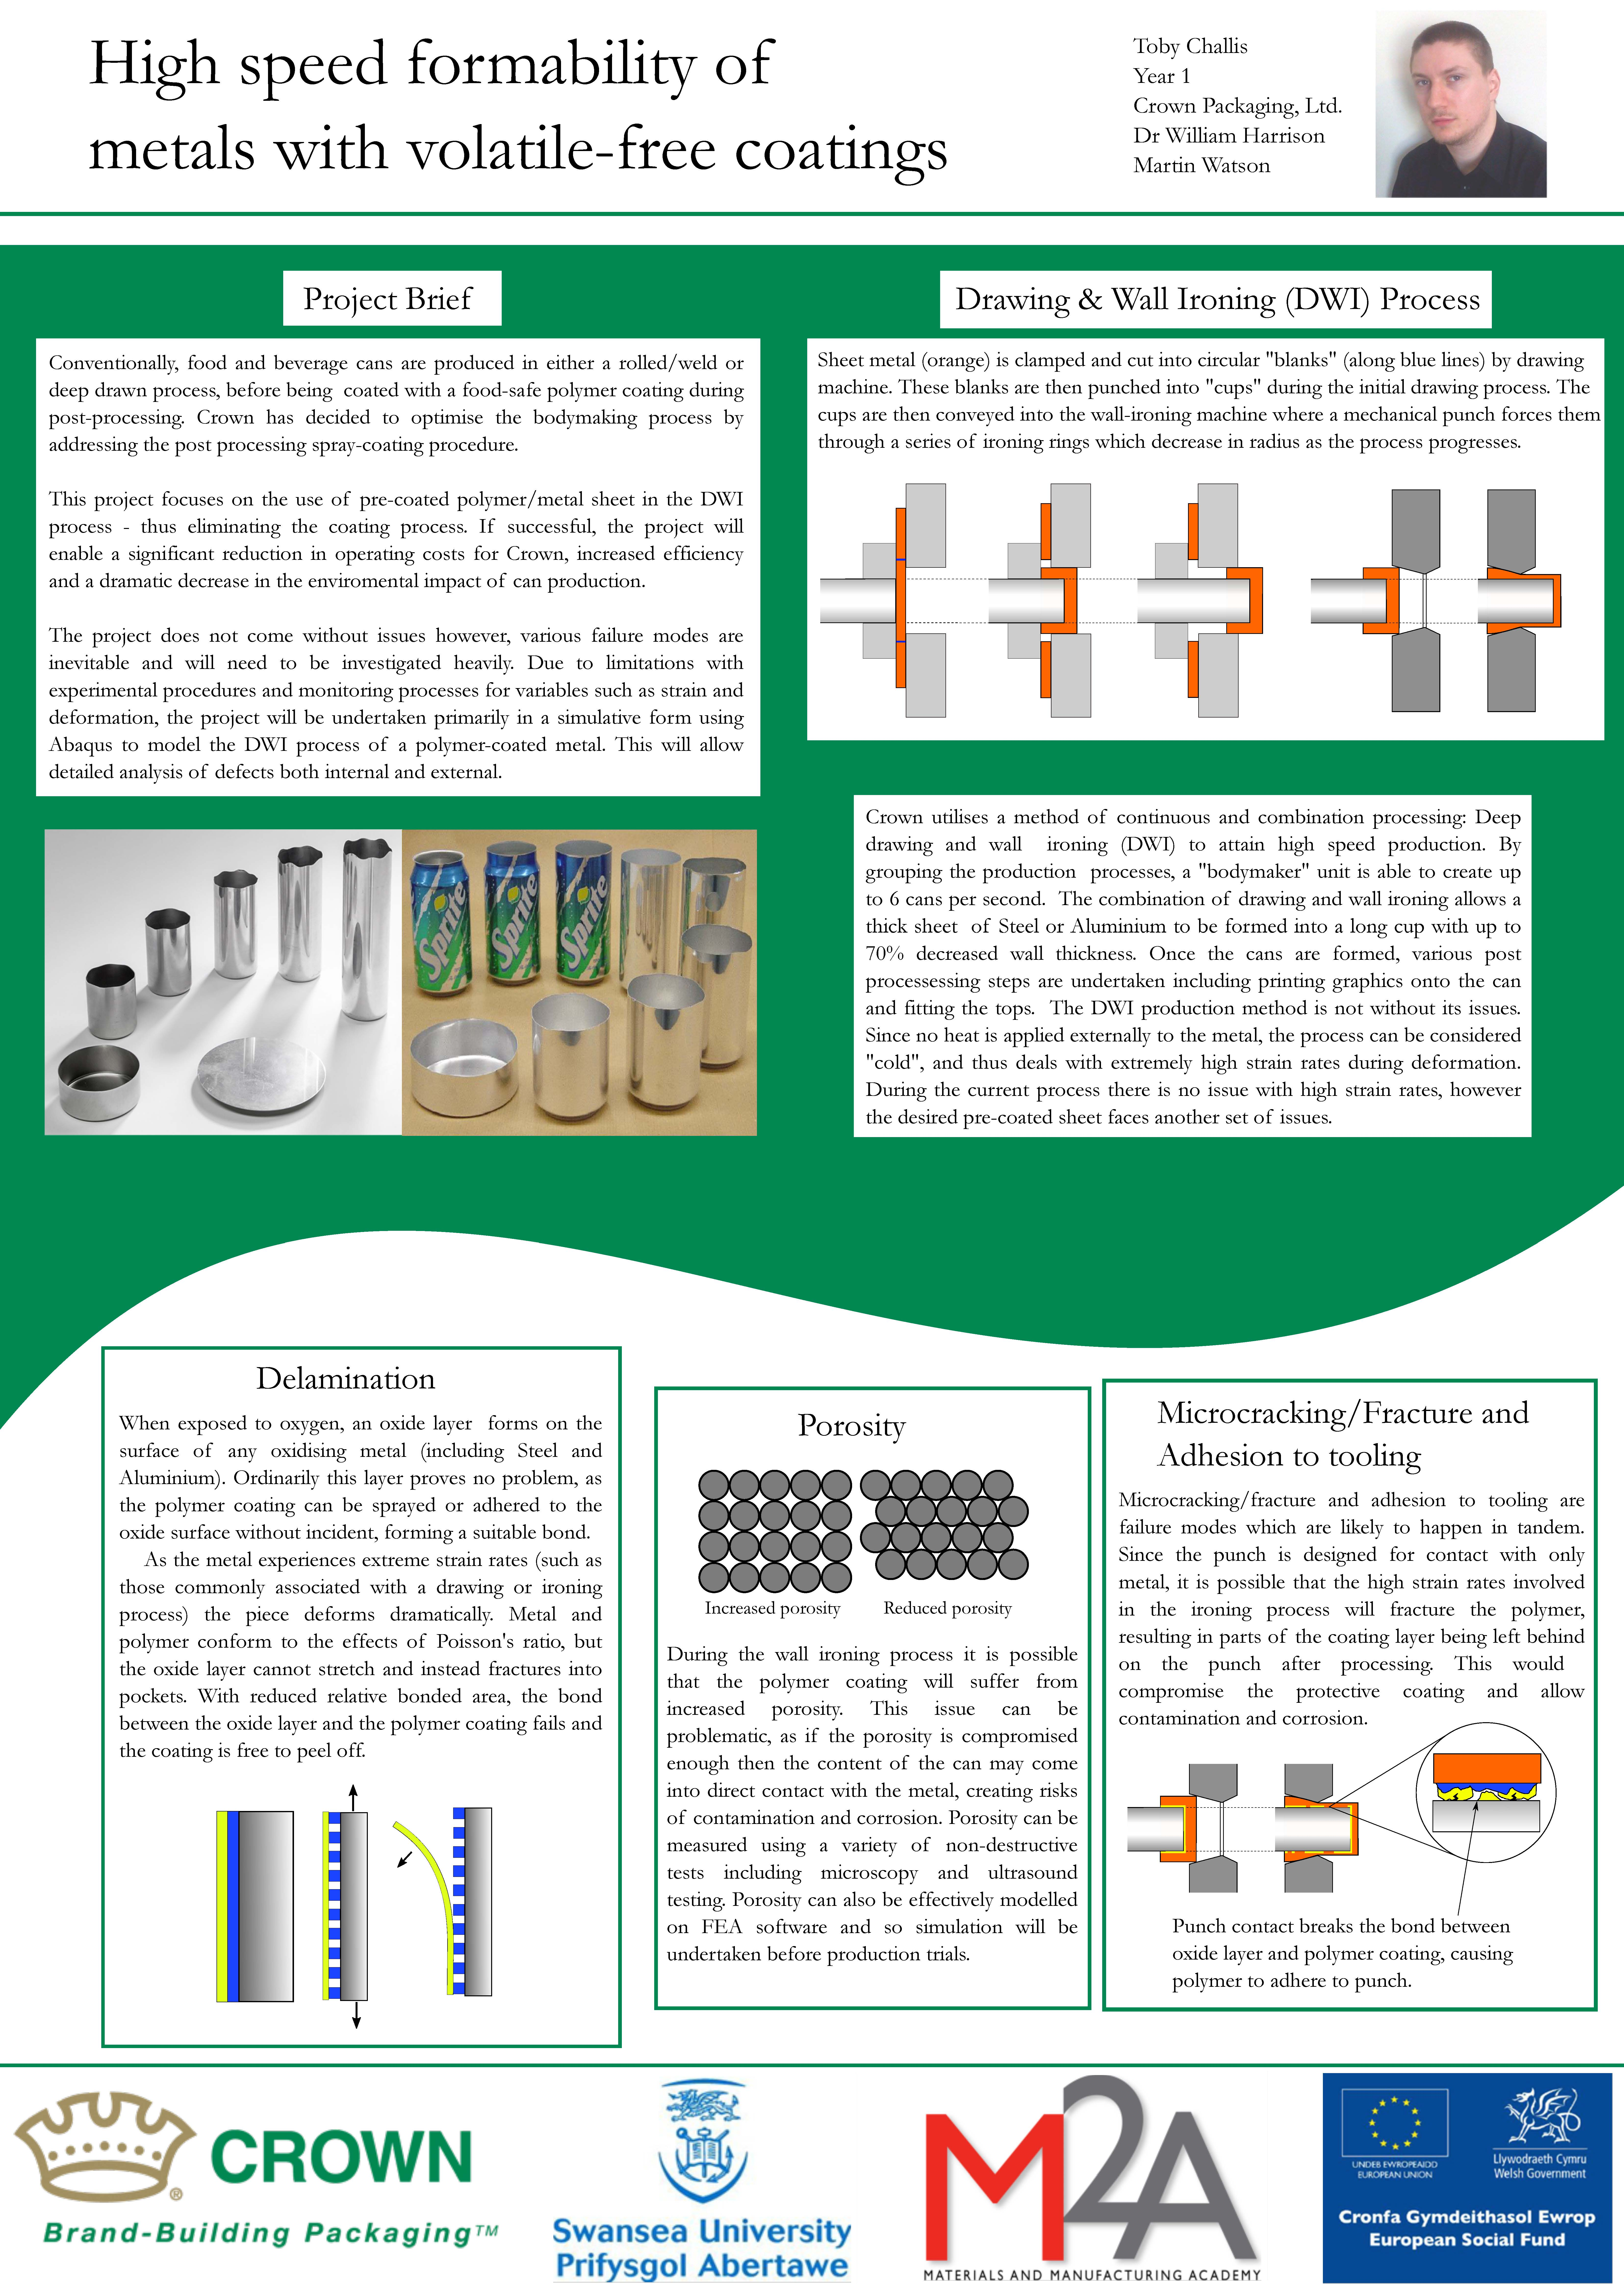 High speed formability of metals with volatile-free coatings